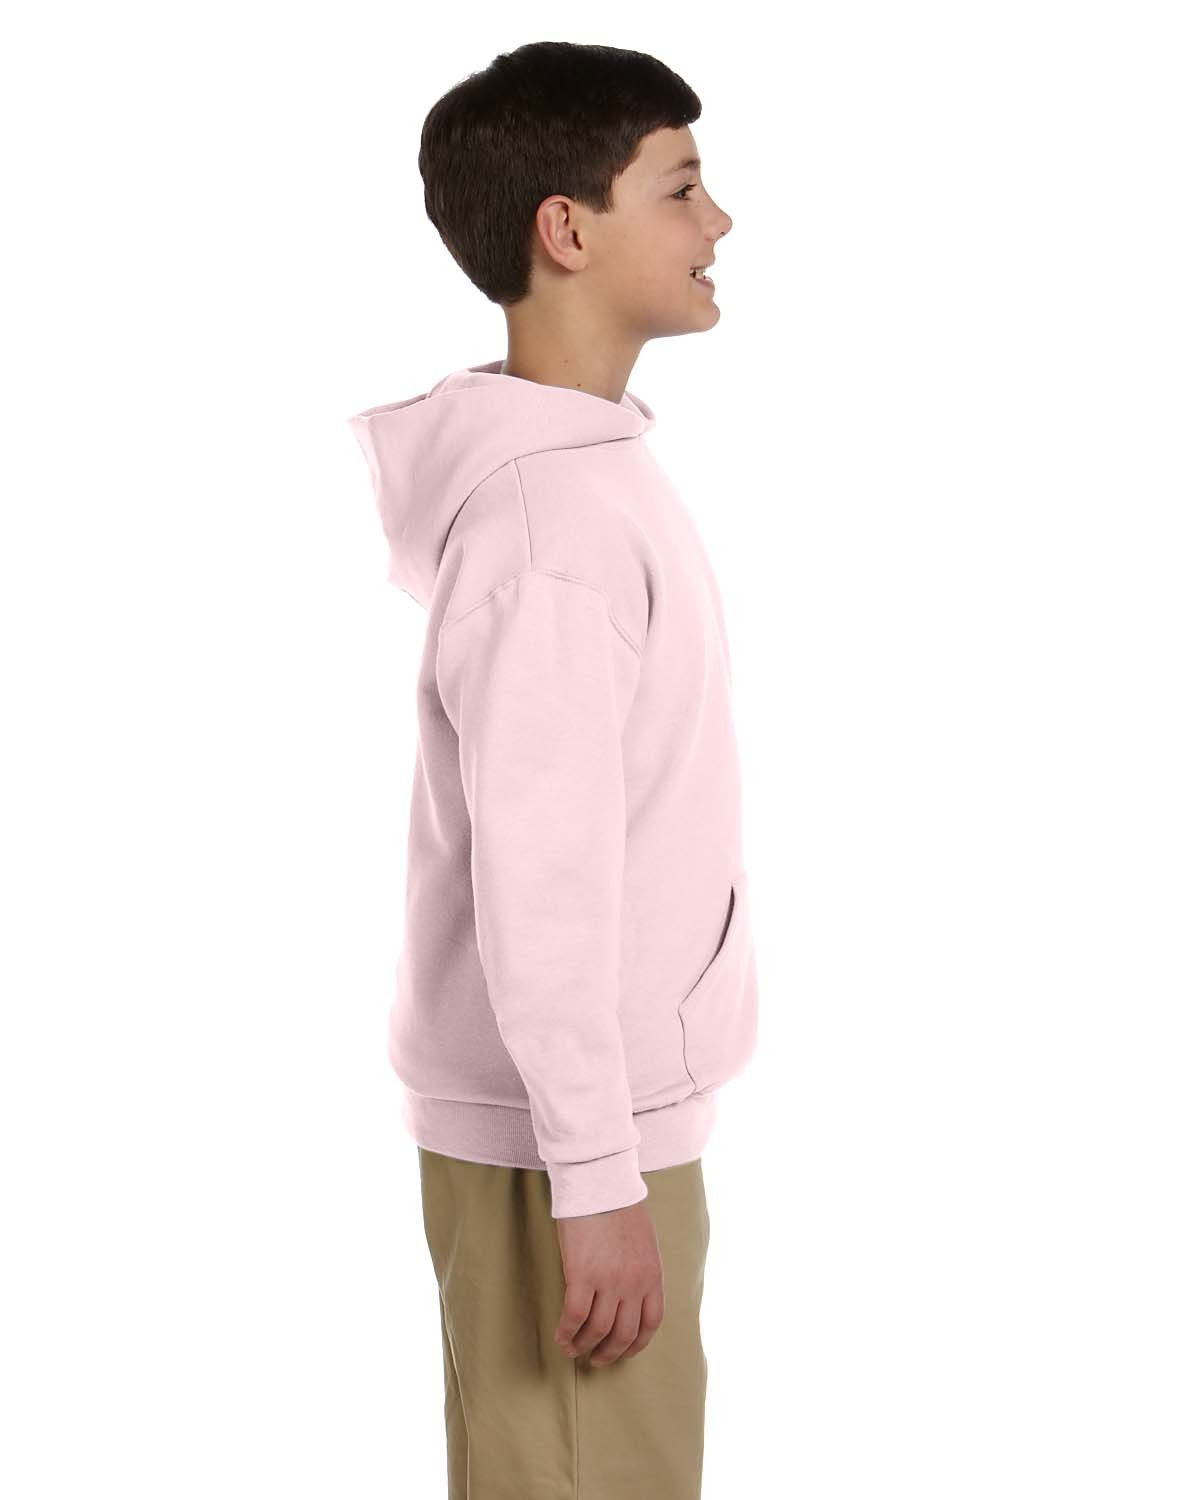 996Y Jerzees CLASSIC PINK